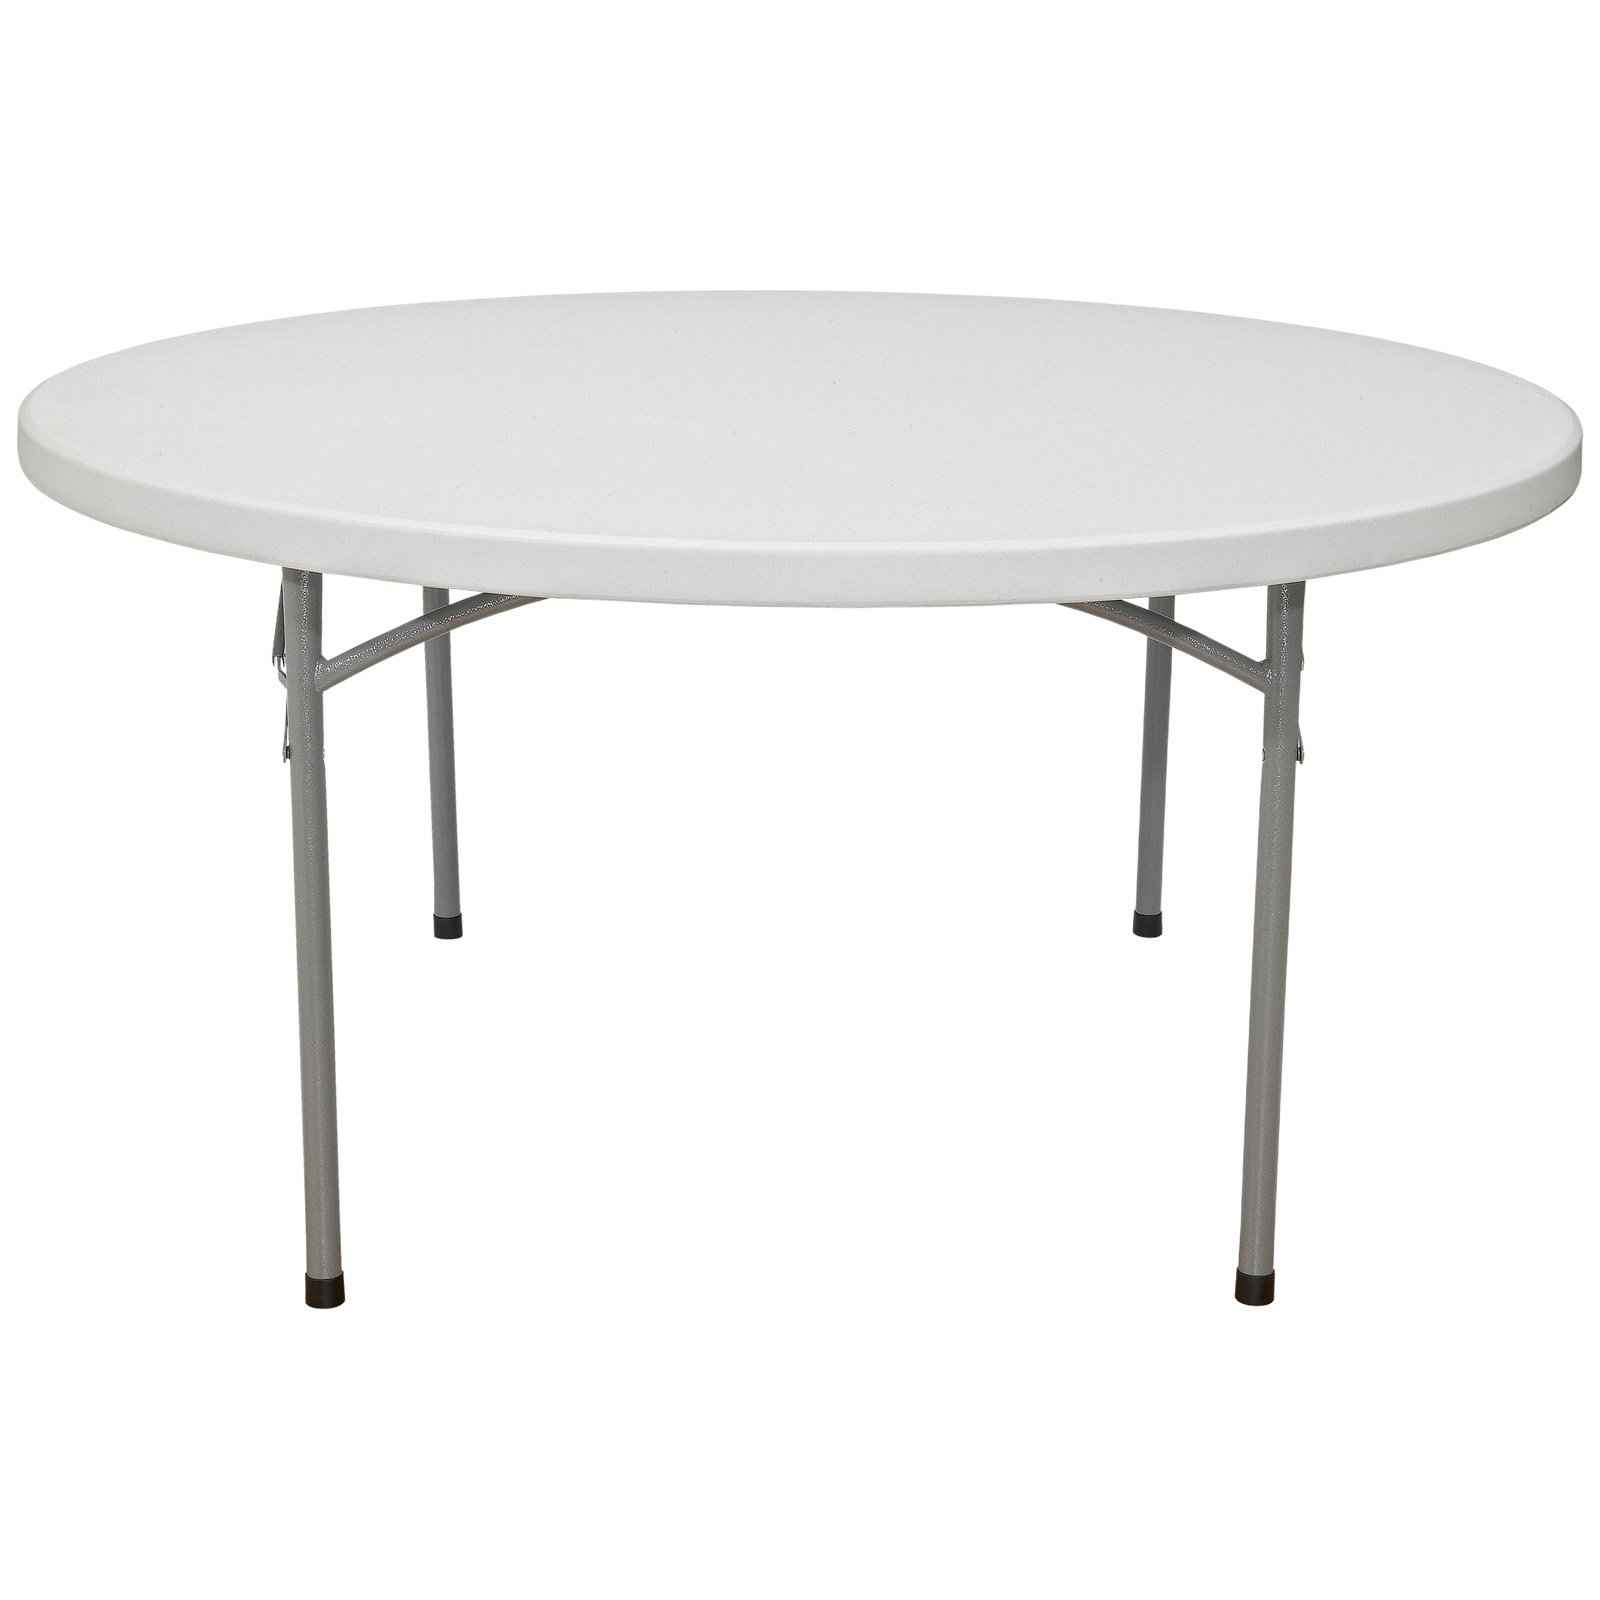 BT White Round Folding Tables from National Public